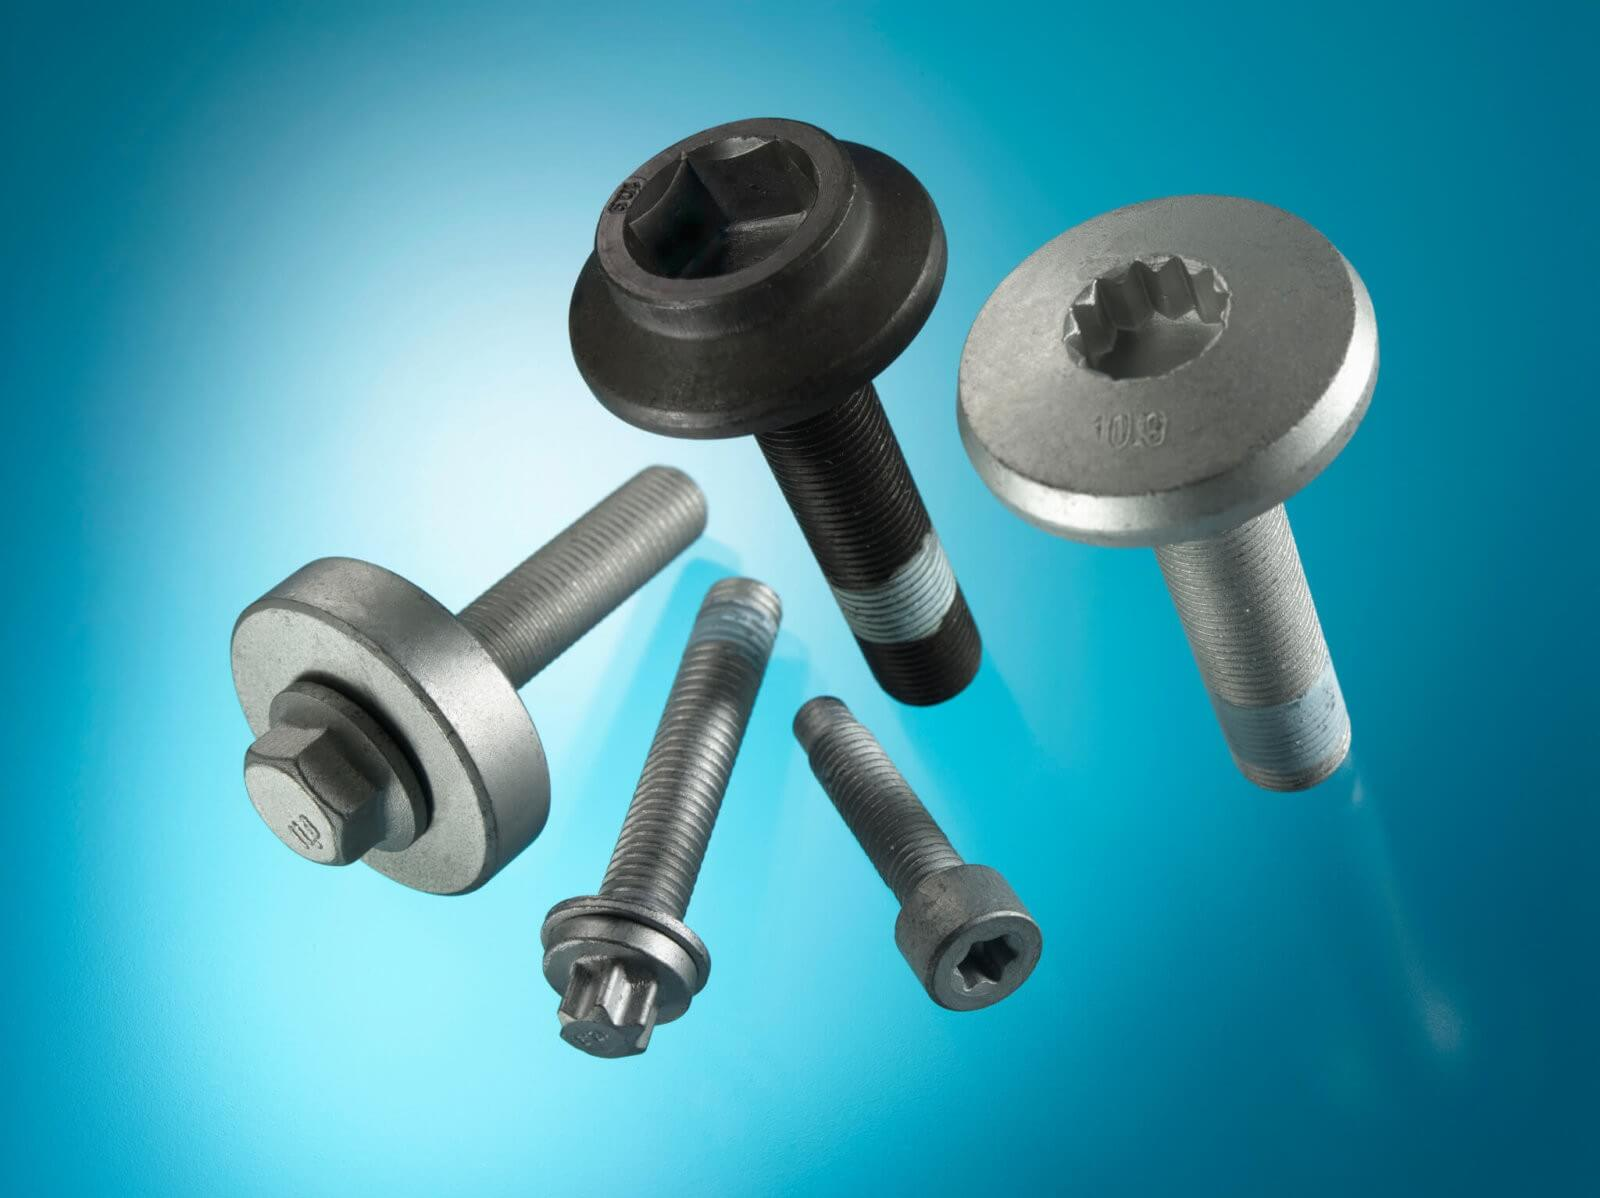 Hexagonal, Socket Head, Flanged, Triple Square, Double Hex, Hexalobular bolts and fixings